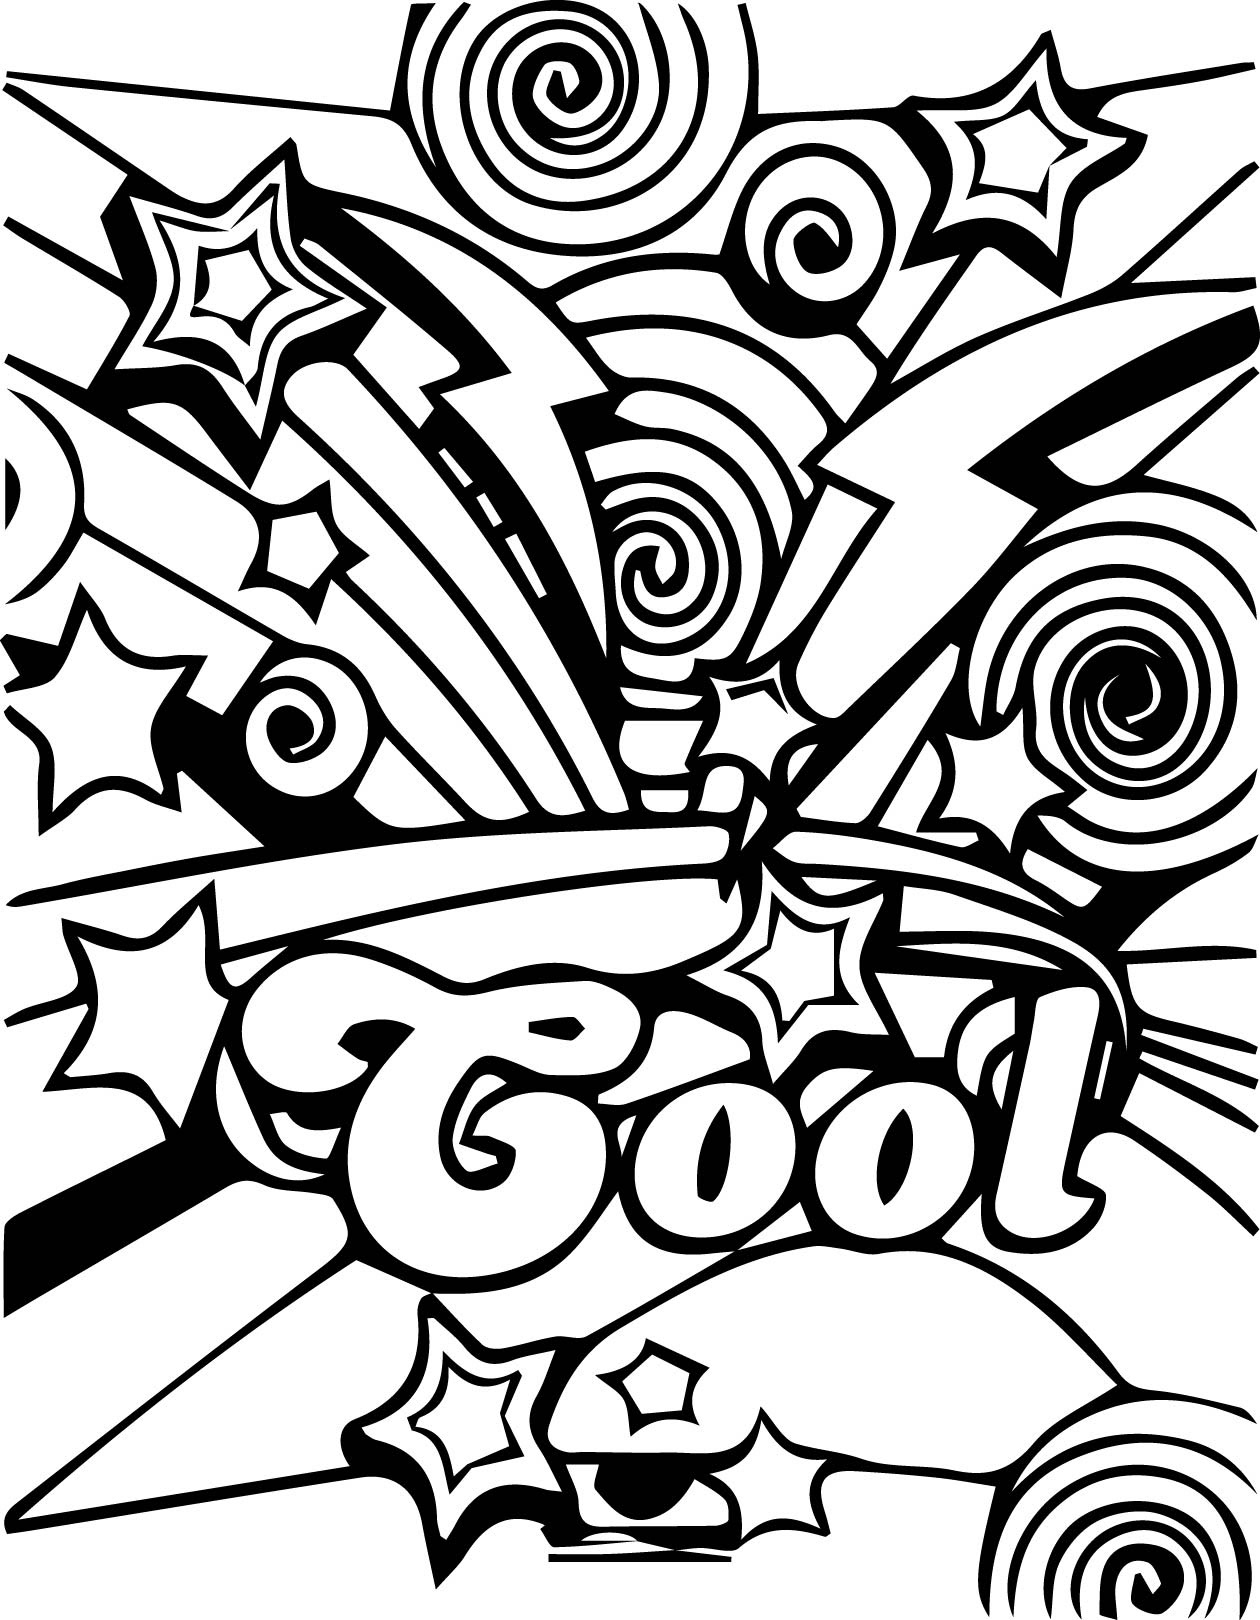 Free Full Size Coloring Pages at GetColorings.com | Free ...